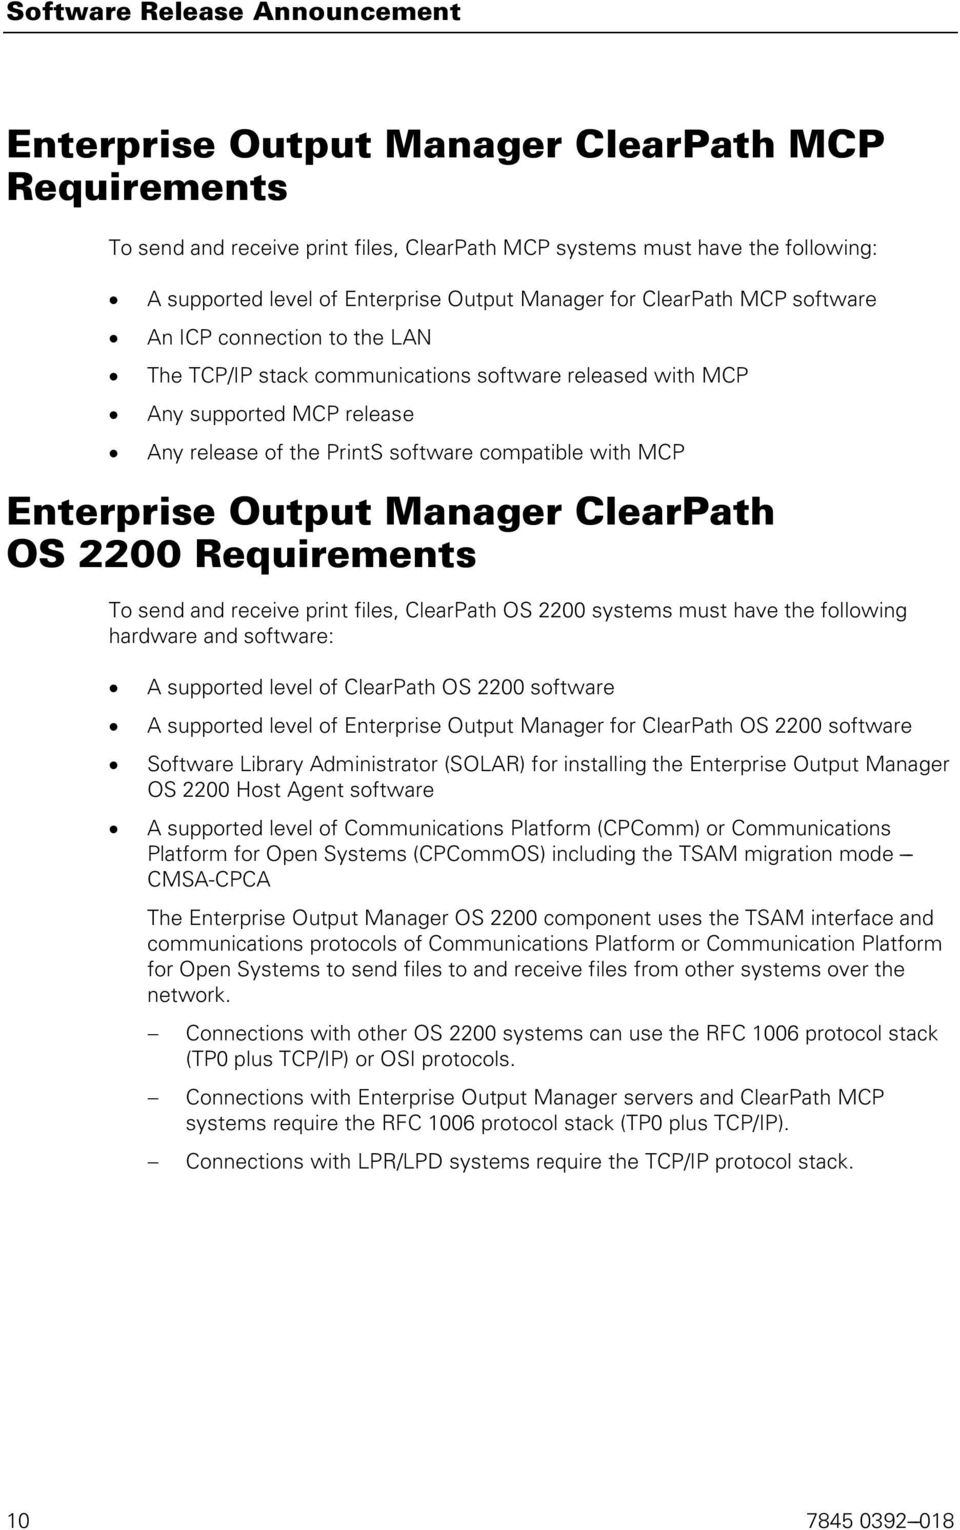 Manager ClearPath OS 2200 Requirements To send and receive print files, ClearPath OS 2200 systems must have the following hardware and software: A supported level of ClearPath OS 2200 software A